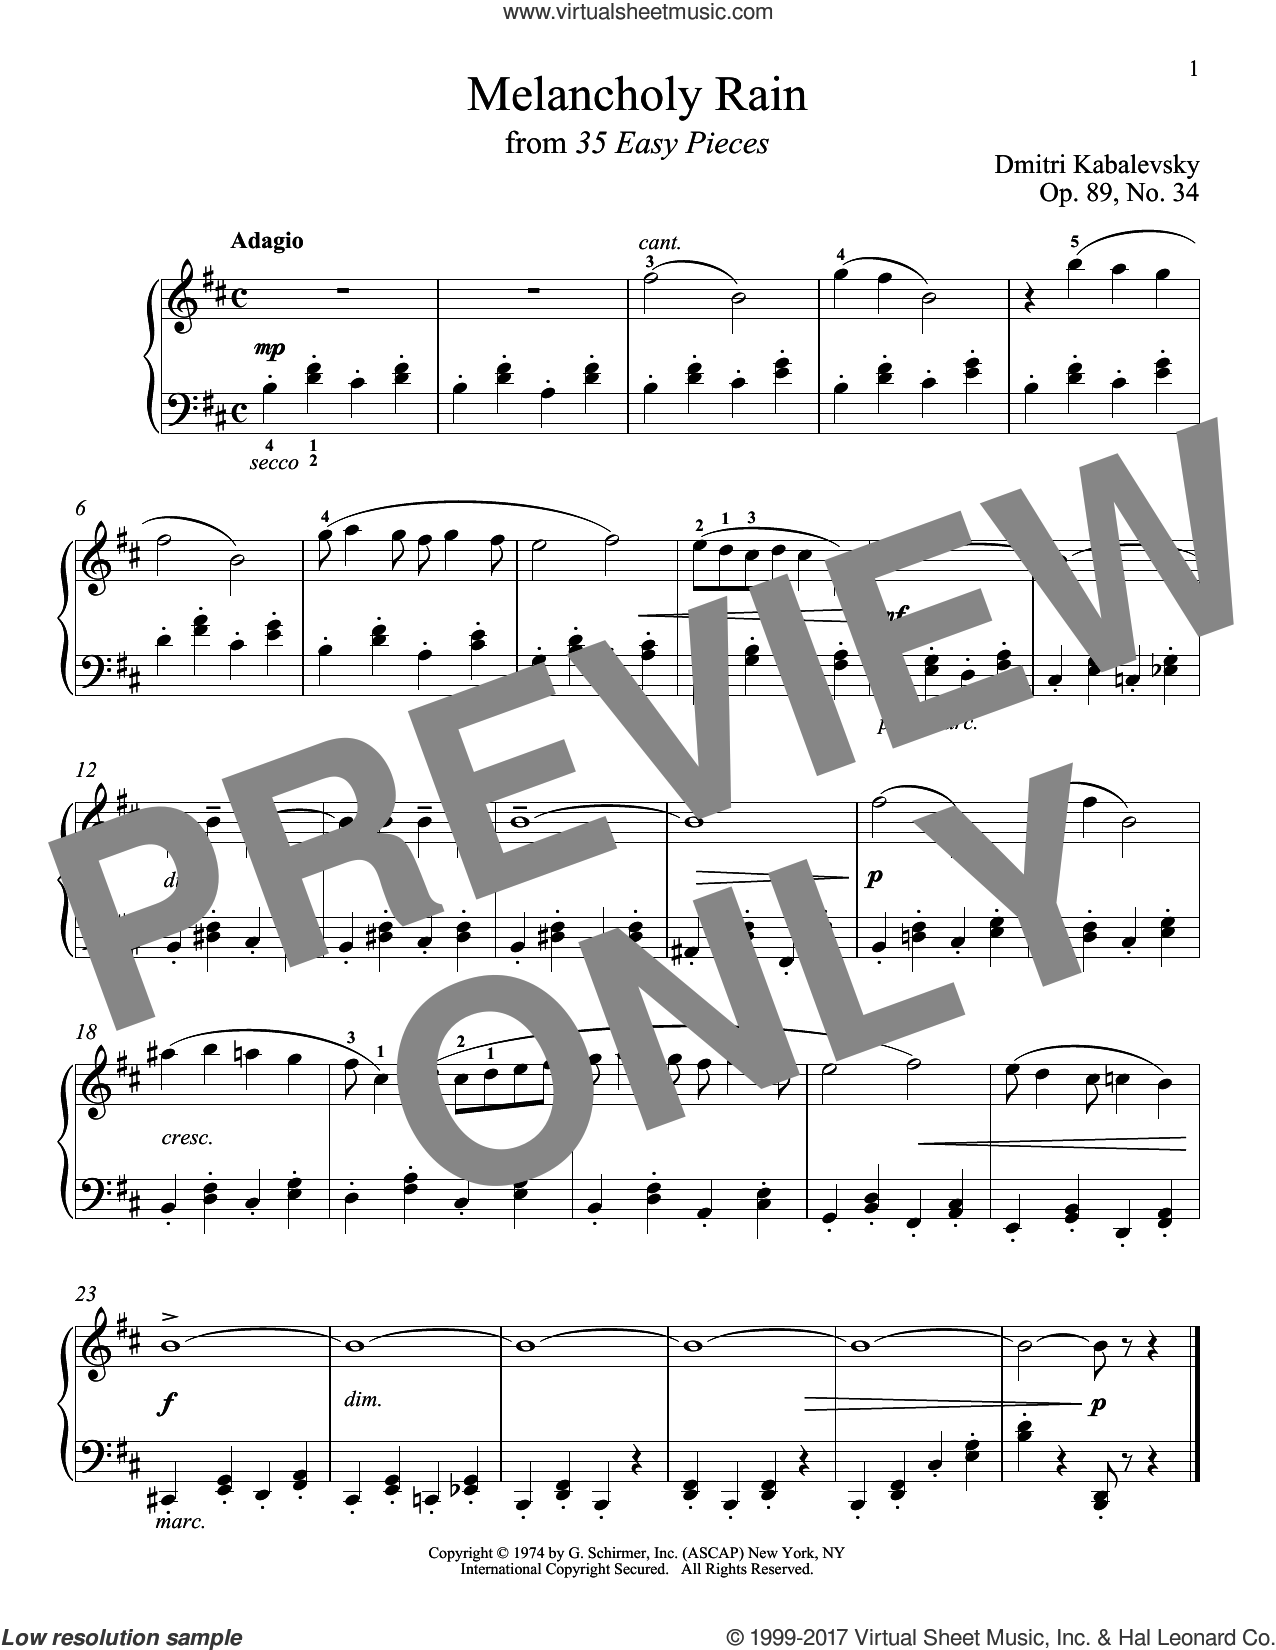 Melancholy Rain, Op. 89, No. 34 sheet music for piano solo by Dmitri Kabalevsky, classical score, intermediate. Score Image Preview.